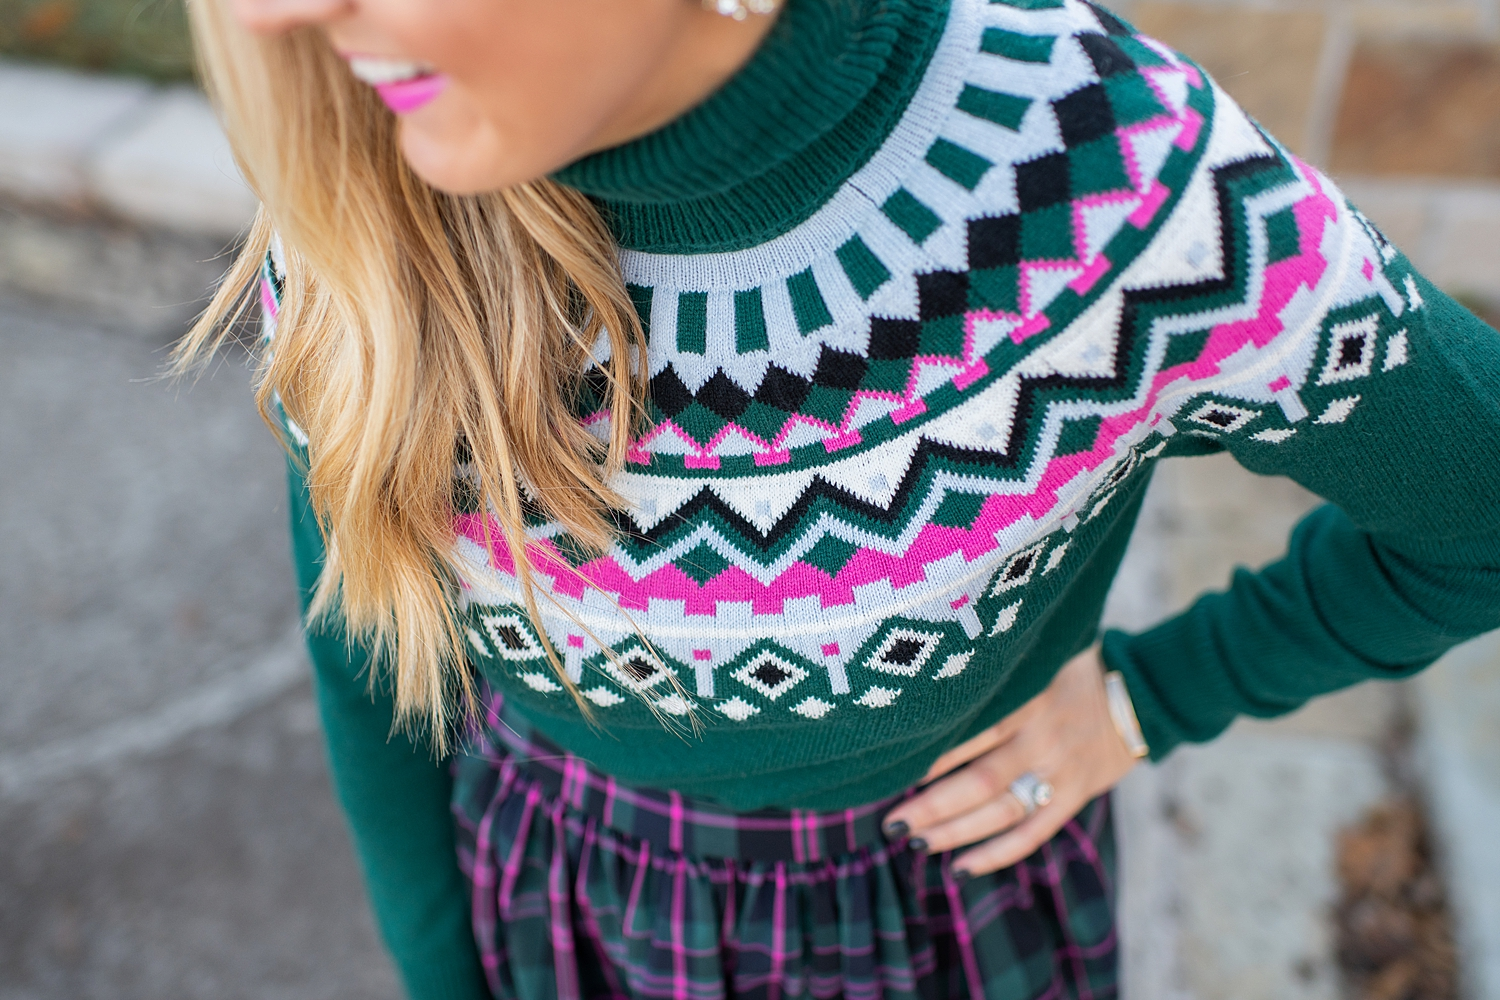 Top Houston fashion blogger, Fancy Ashley, features 7 Holiday Outfits perfect for the season: image of a woman wearing a Plaid skirt, green turtleneck sweater and Sam Edelman heels, all available at Nordstrom